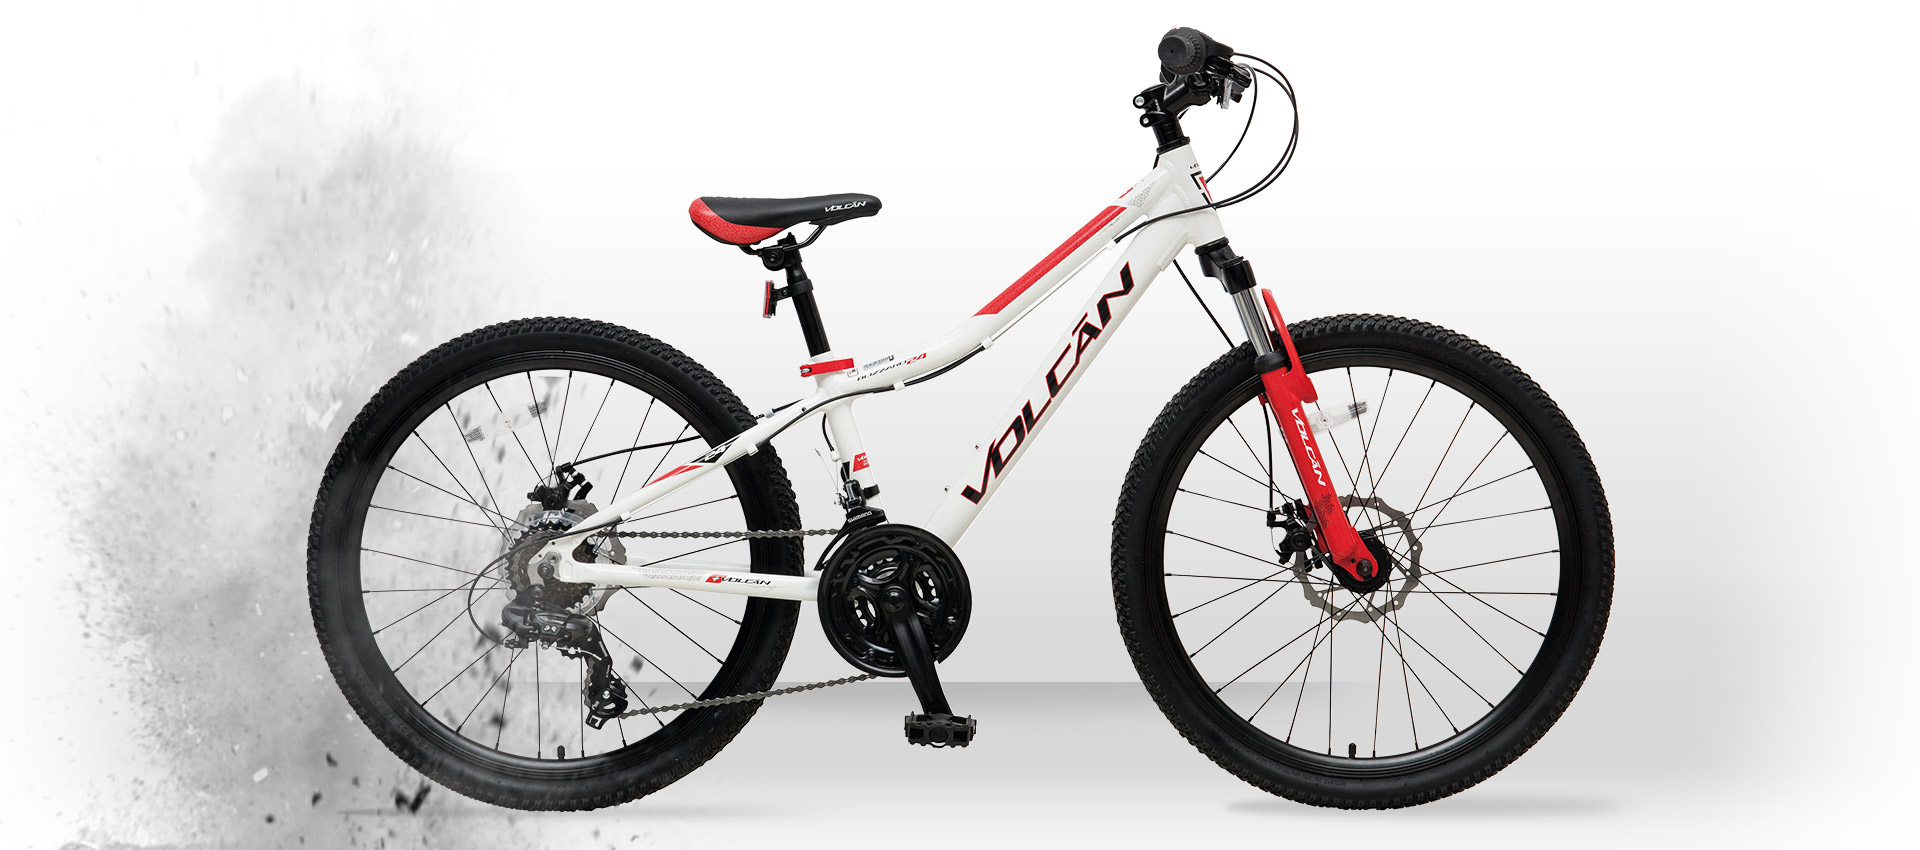 Volcan Mountain Bikes - Blizzard 24